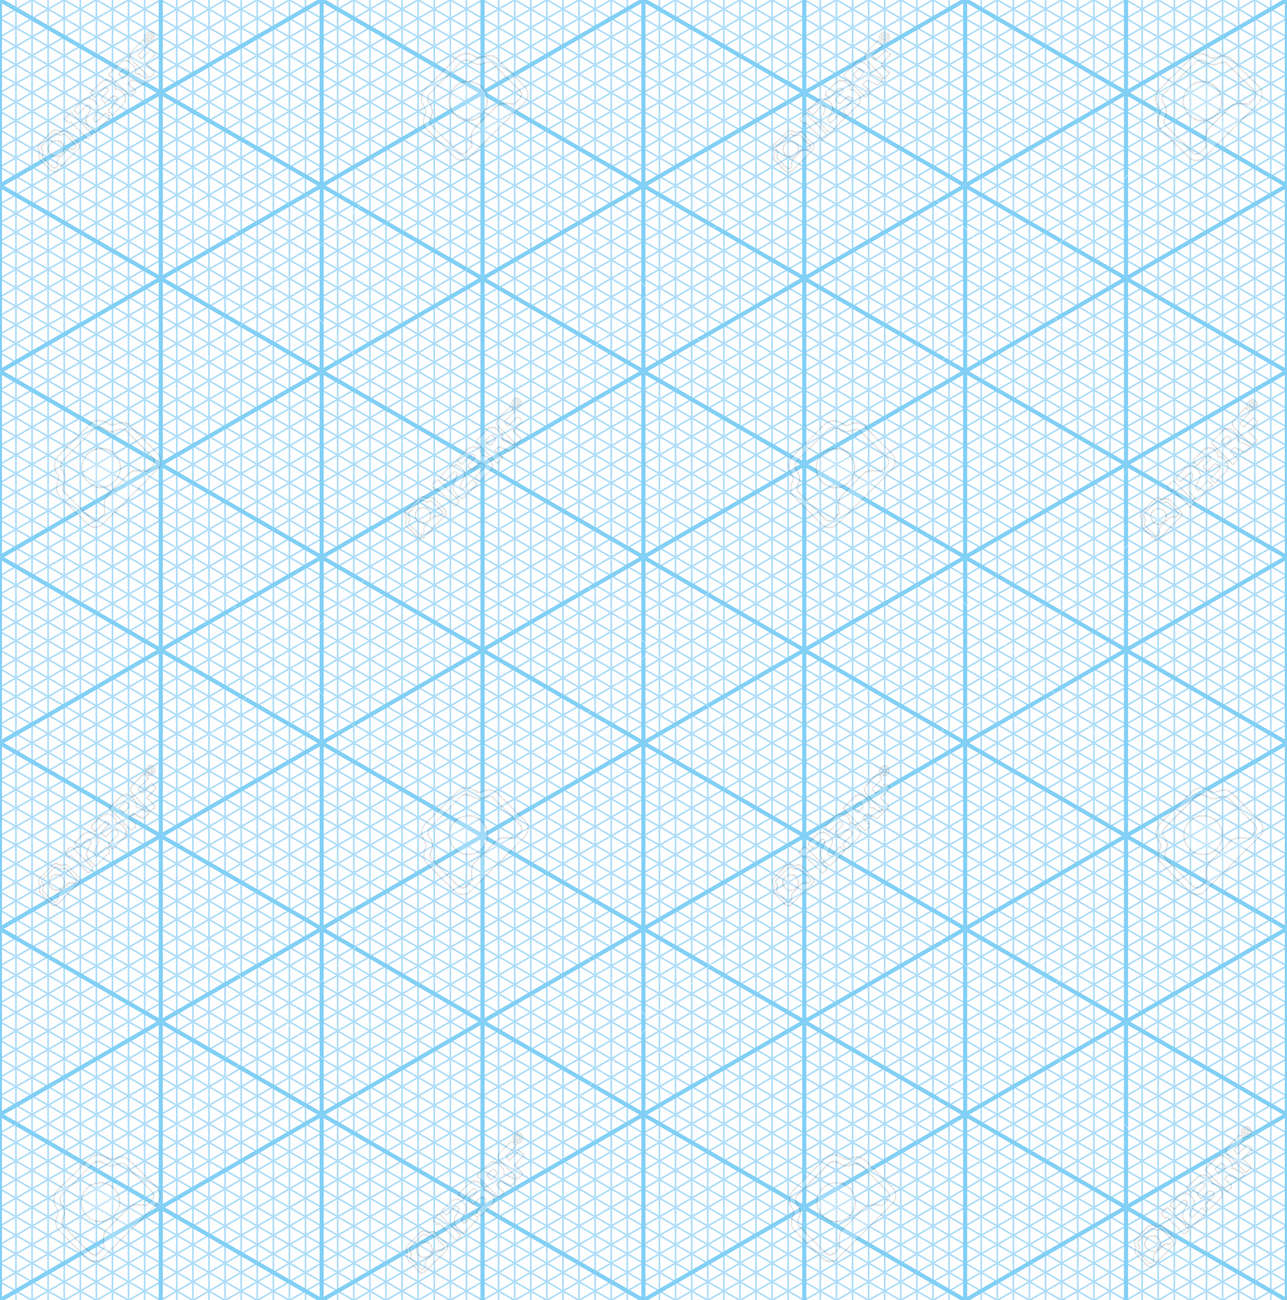 Isometric Graph Paper For 3D Design. Seamless Vector Pattern ...